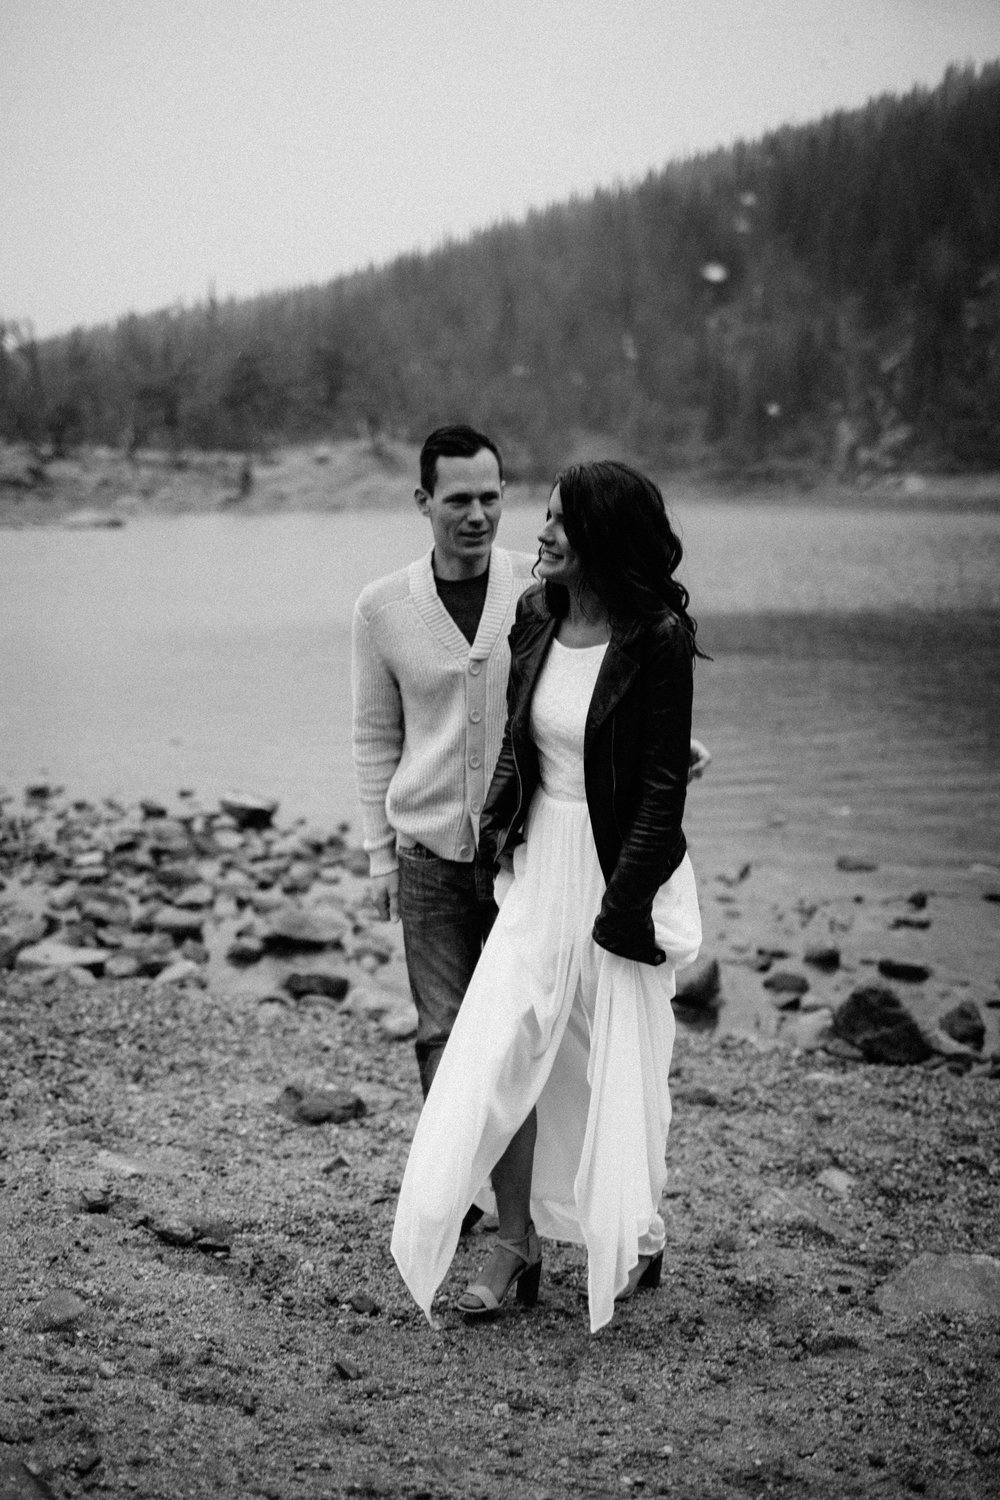 Saint Mary's Glacier Engagement Photography and Destination Wedding Photographers